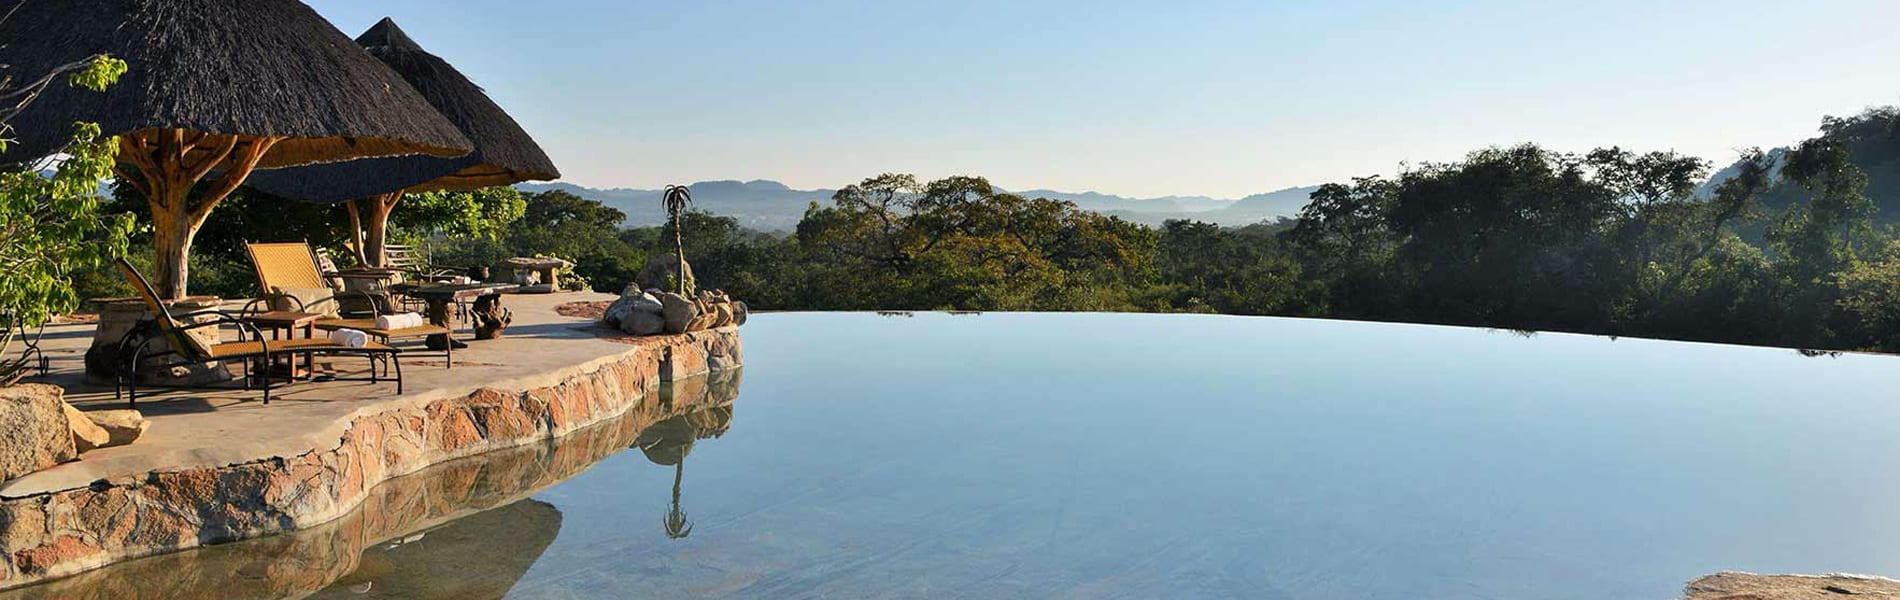 Matobo accommodatie